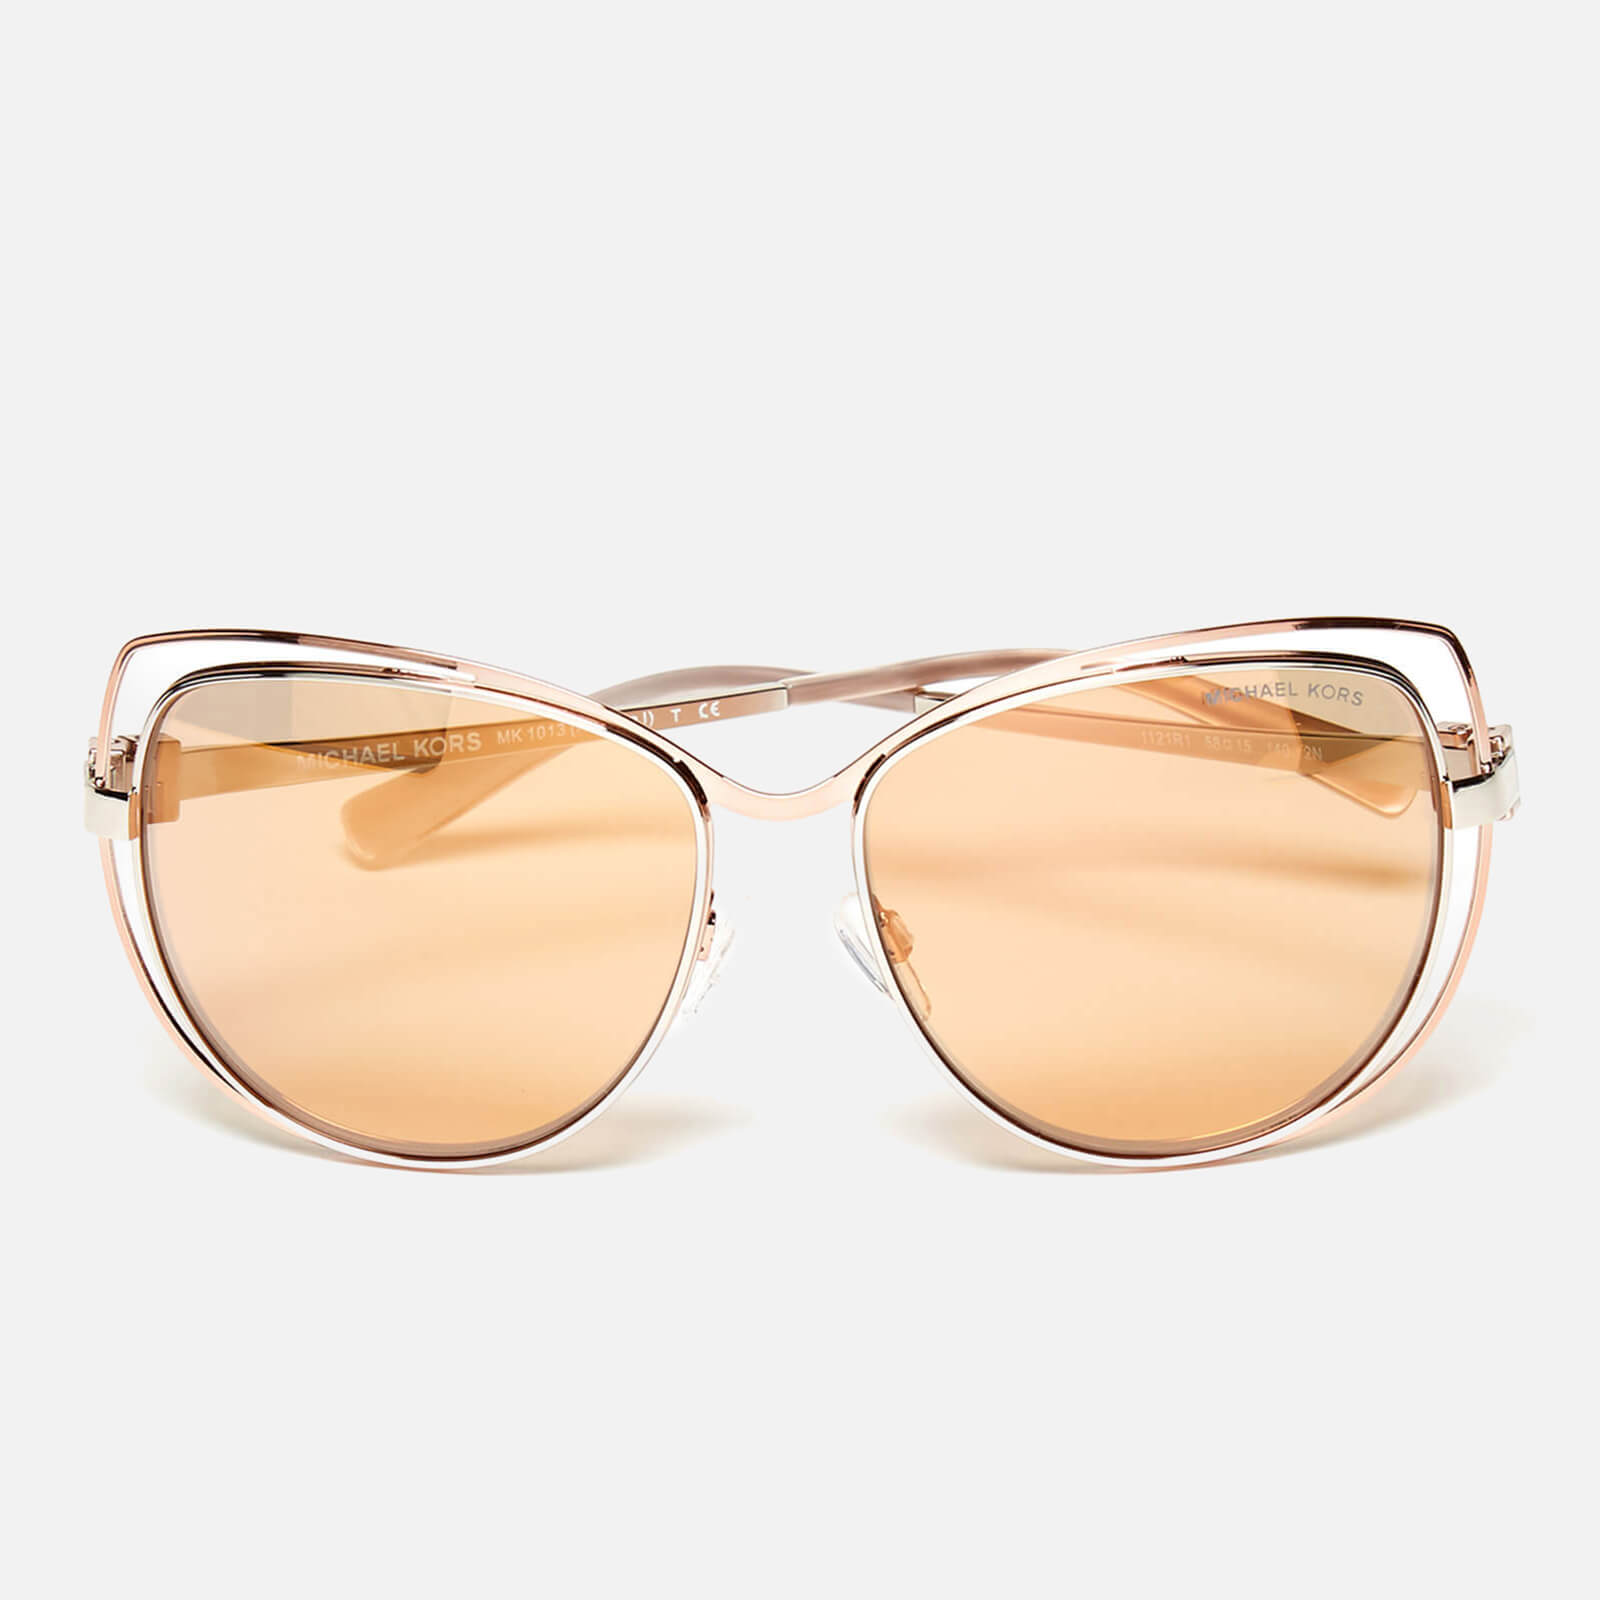 7252adc78f09a MICHAEL MICHAEL KORS Women s Audrina I Sunglasses - Silver Rose Gold - Free  UK Delivery over £50